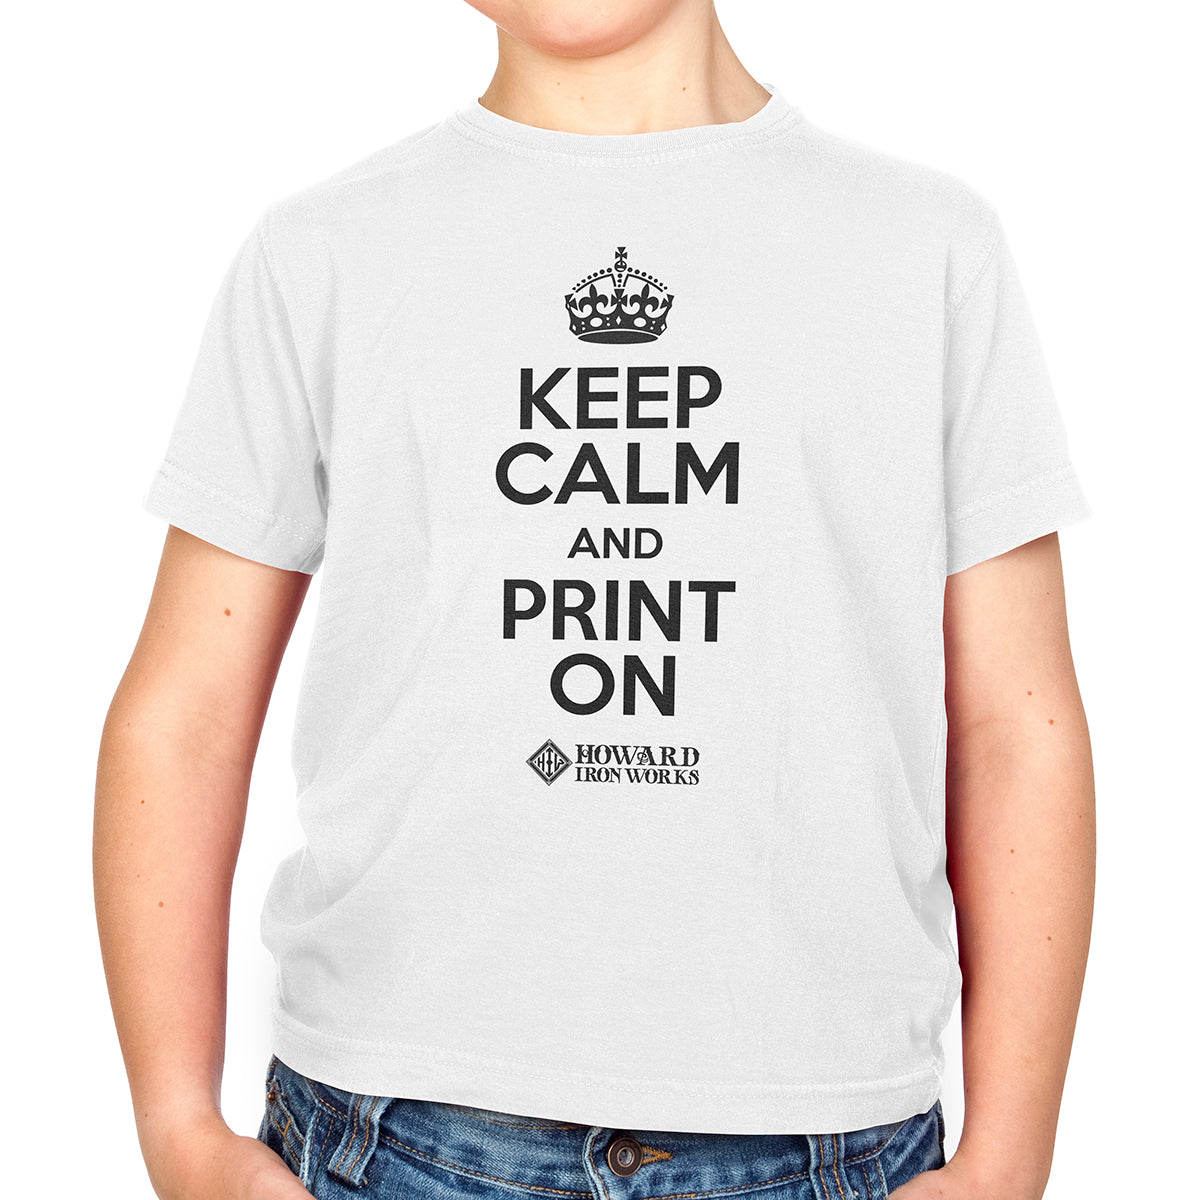 Youth T-shirt, Keep Calm, White - from Howard Iron Works Printing Museum